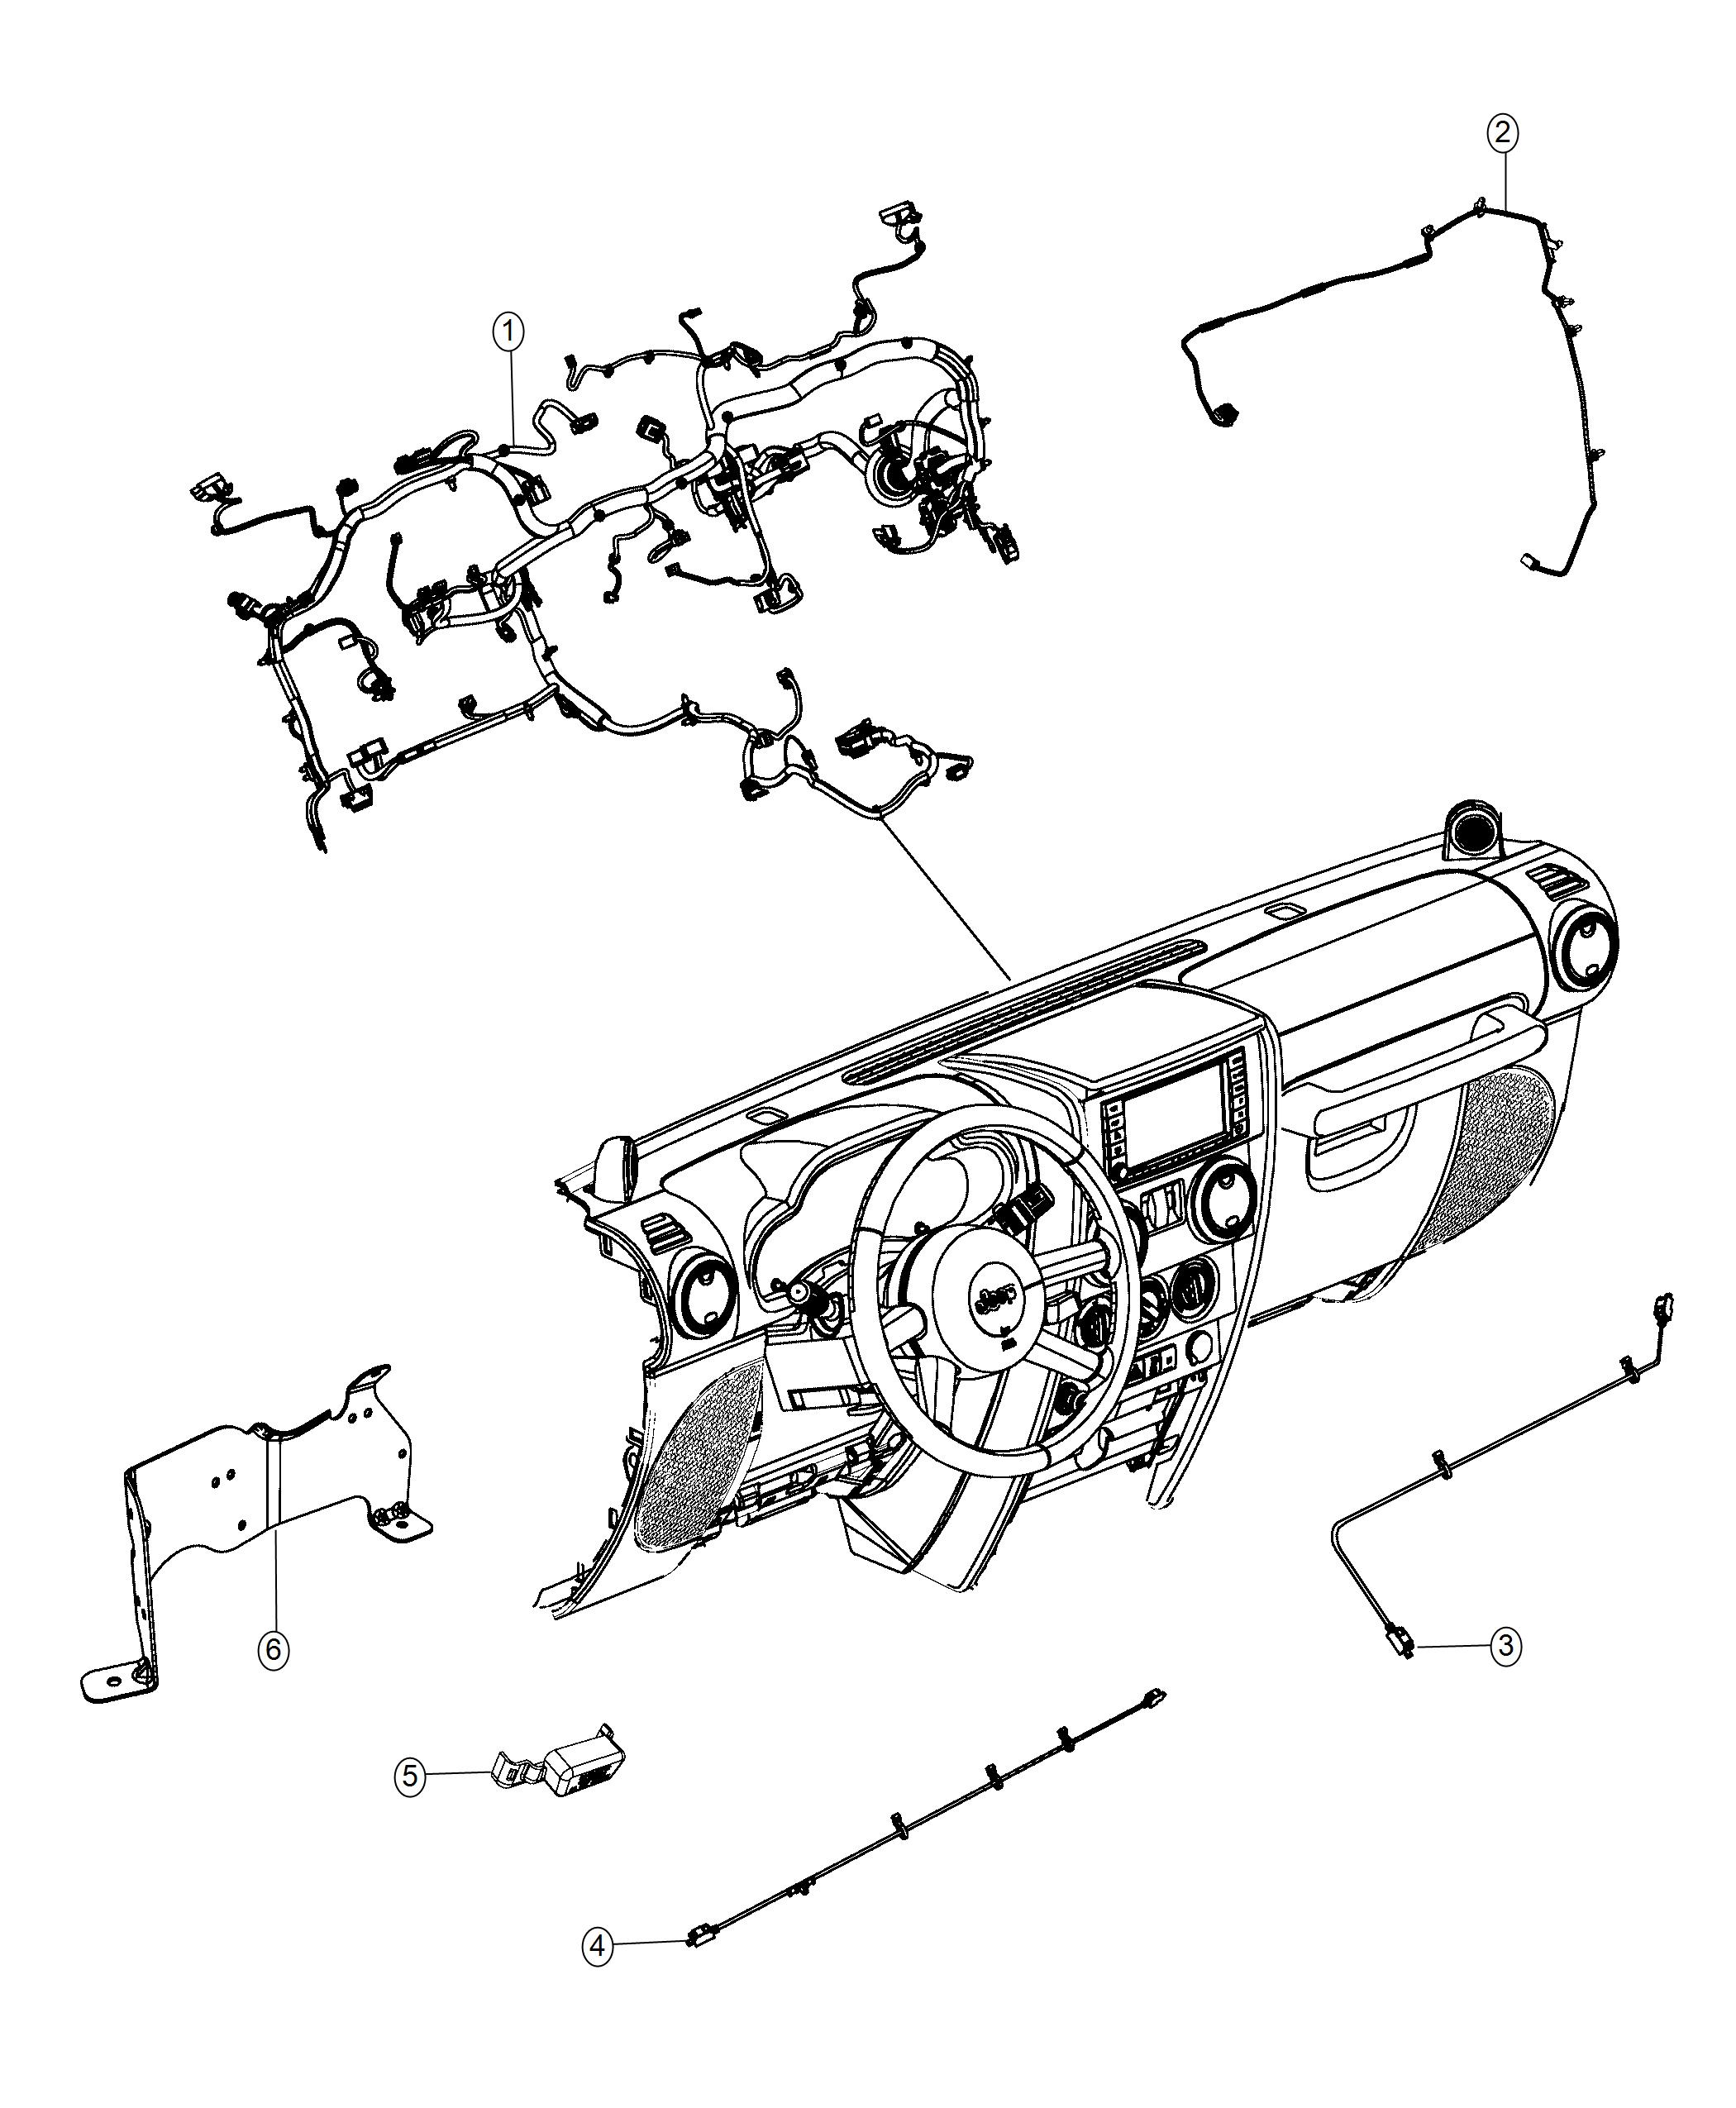 [DIAGRAM] 2013 Jeep Wrangler Uconnect Wiring Diagram FULL